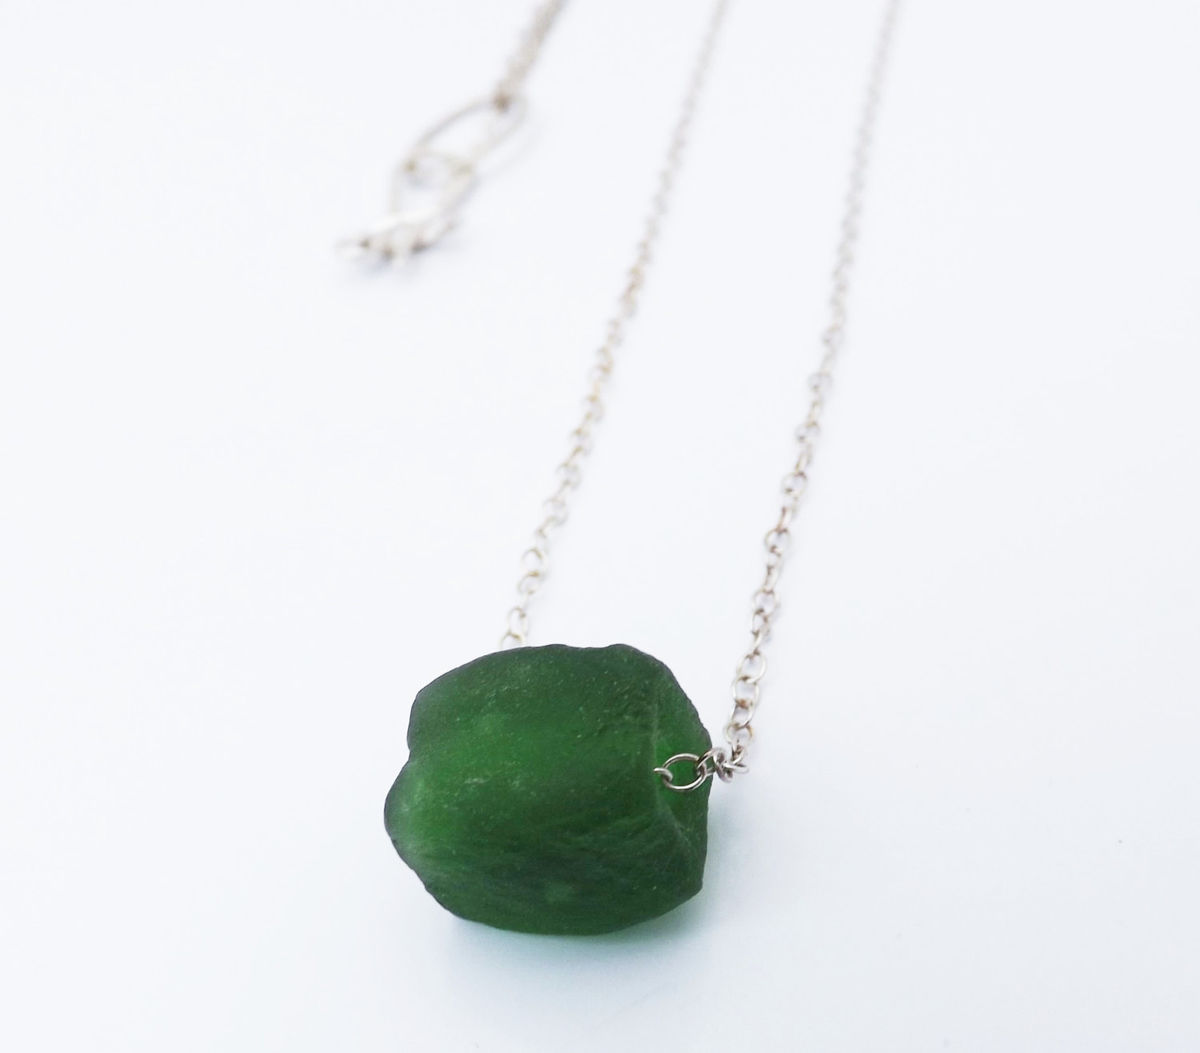 recycled bottle bead necklace - product images  of